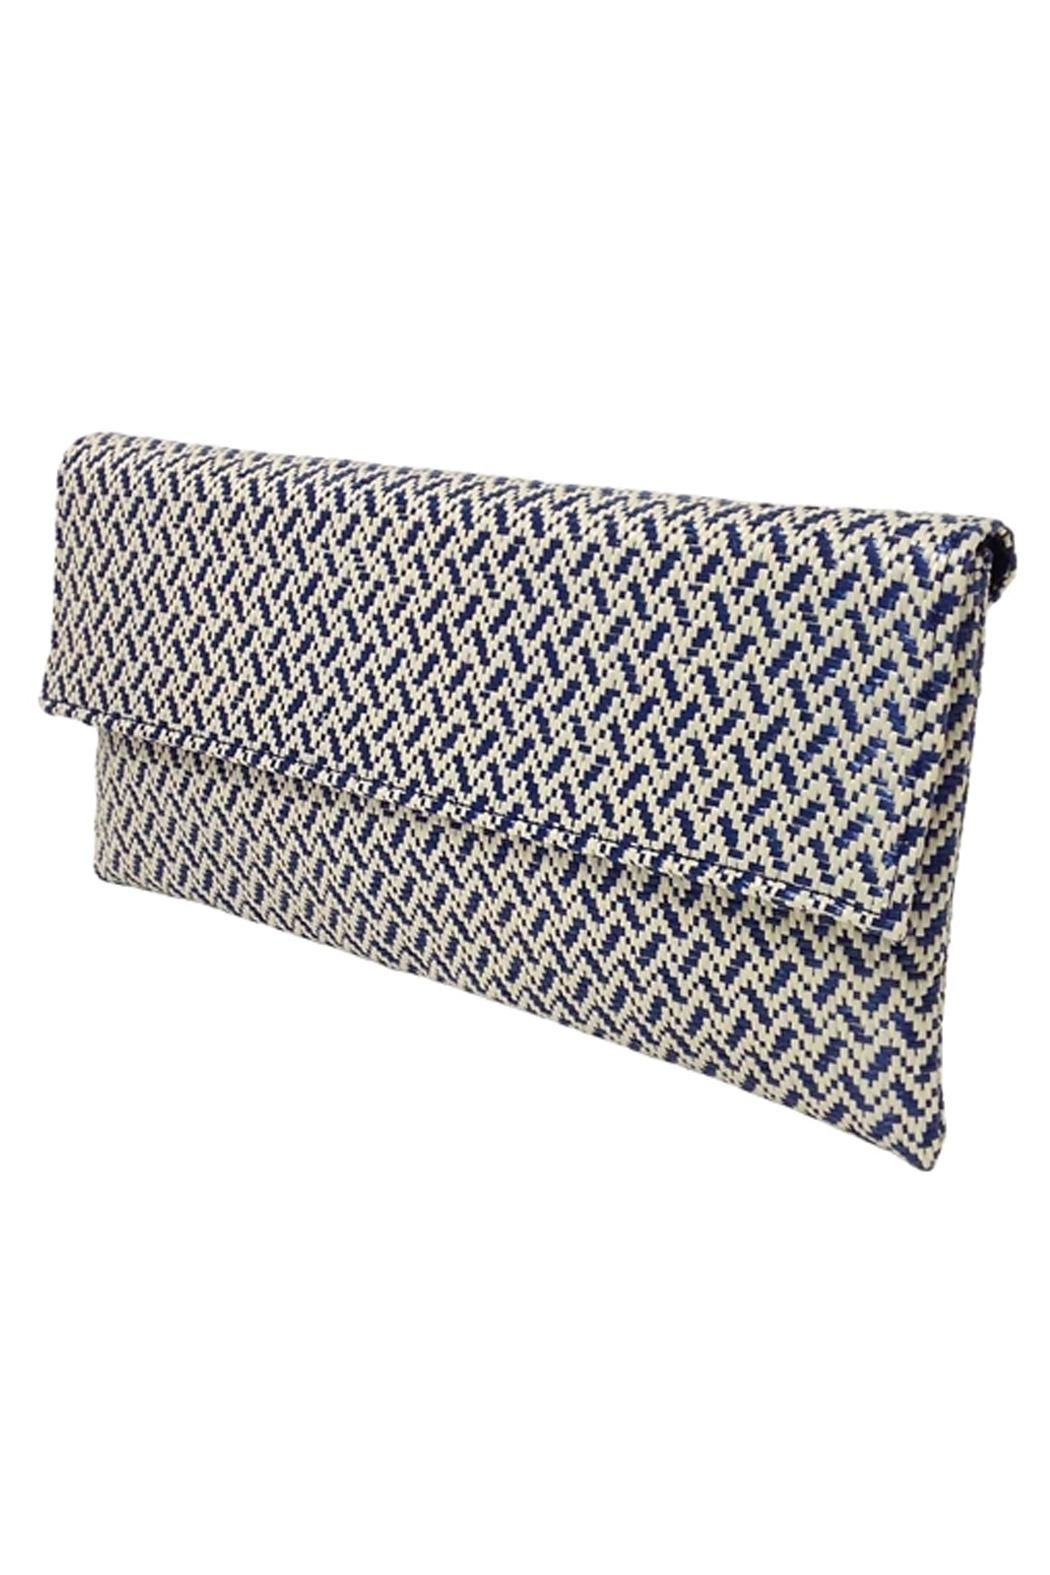 Wild Lilies Jewelry  Navy Chevron Clutch - Front Full Image